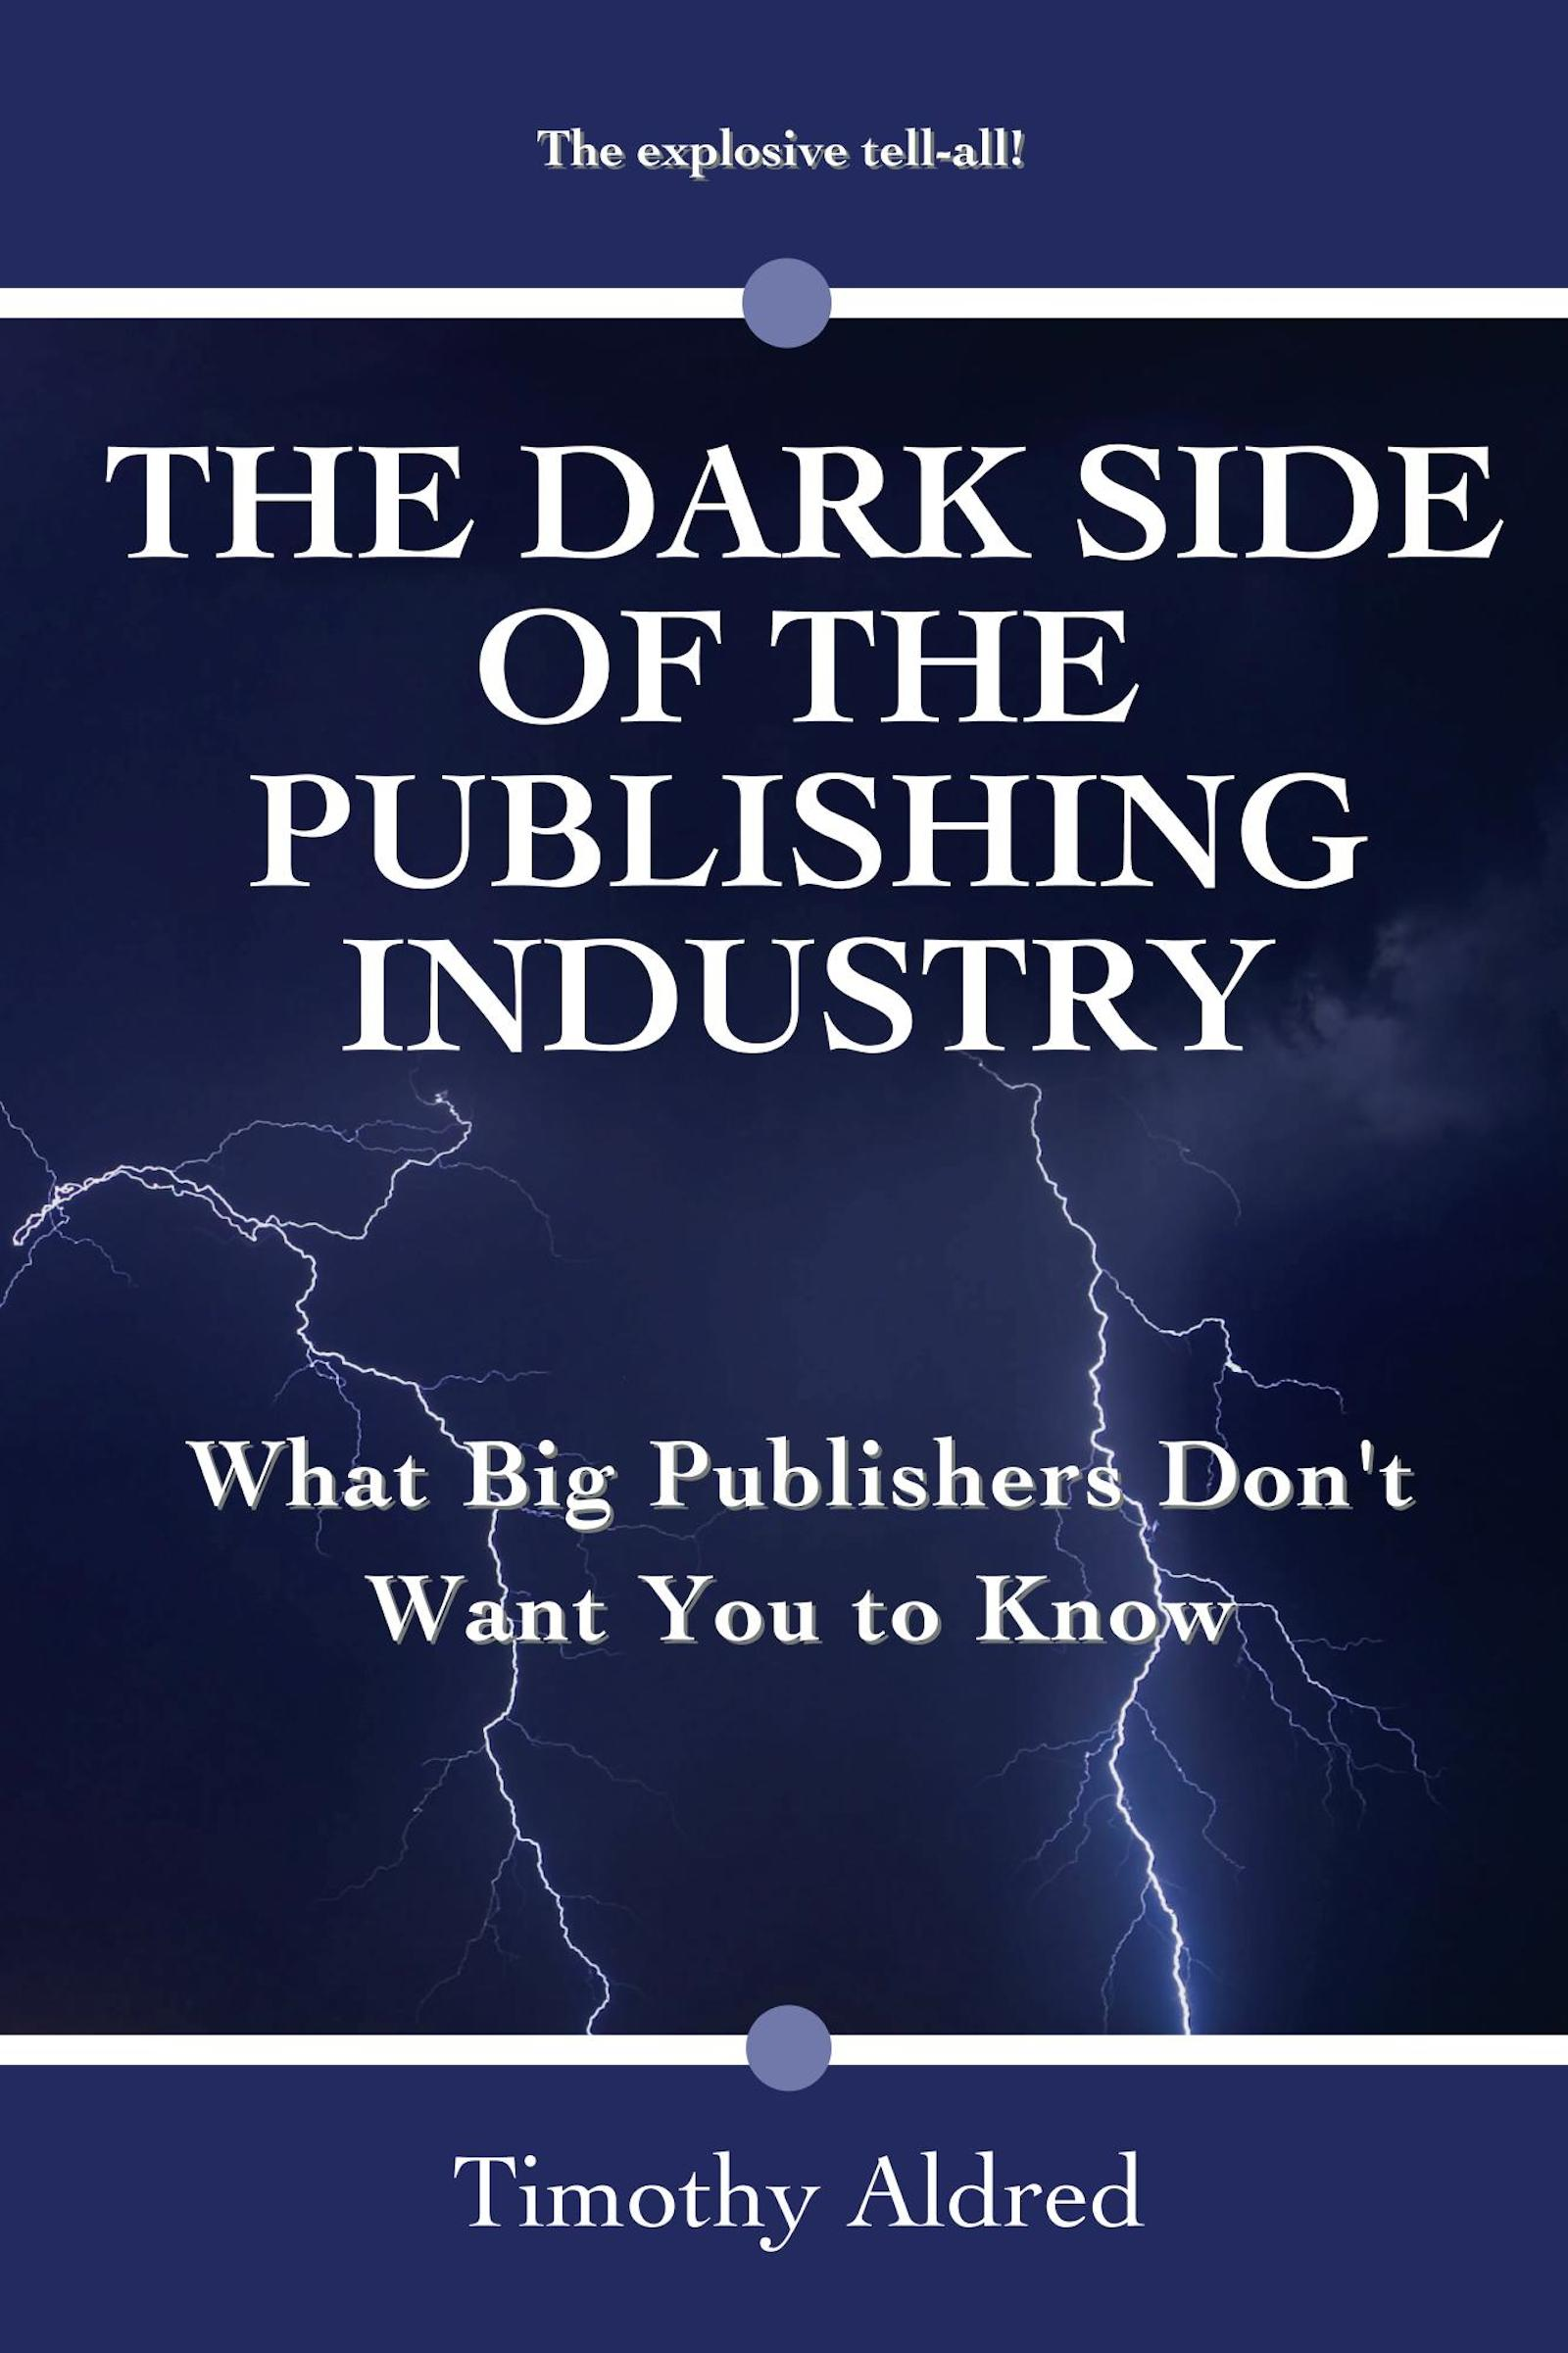 Timothy Aldred - The Dark Side of the Publishing Industry: What Big Publishers Don't Want You to Know